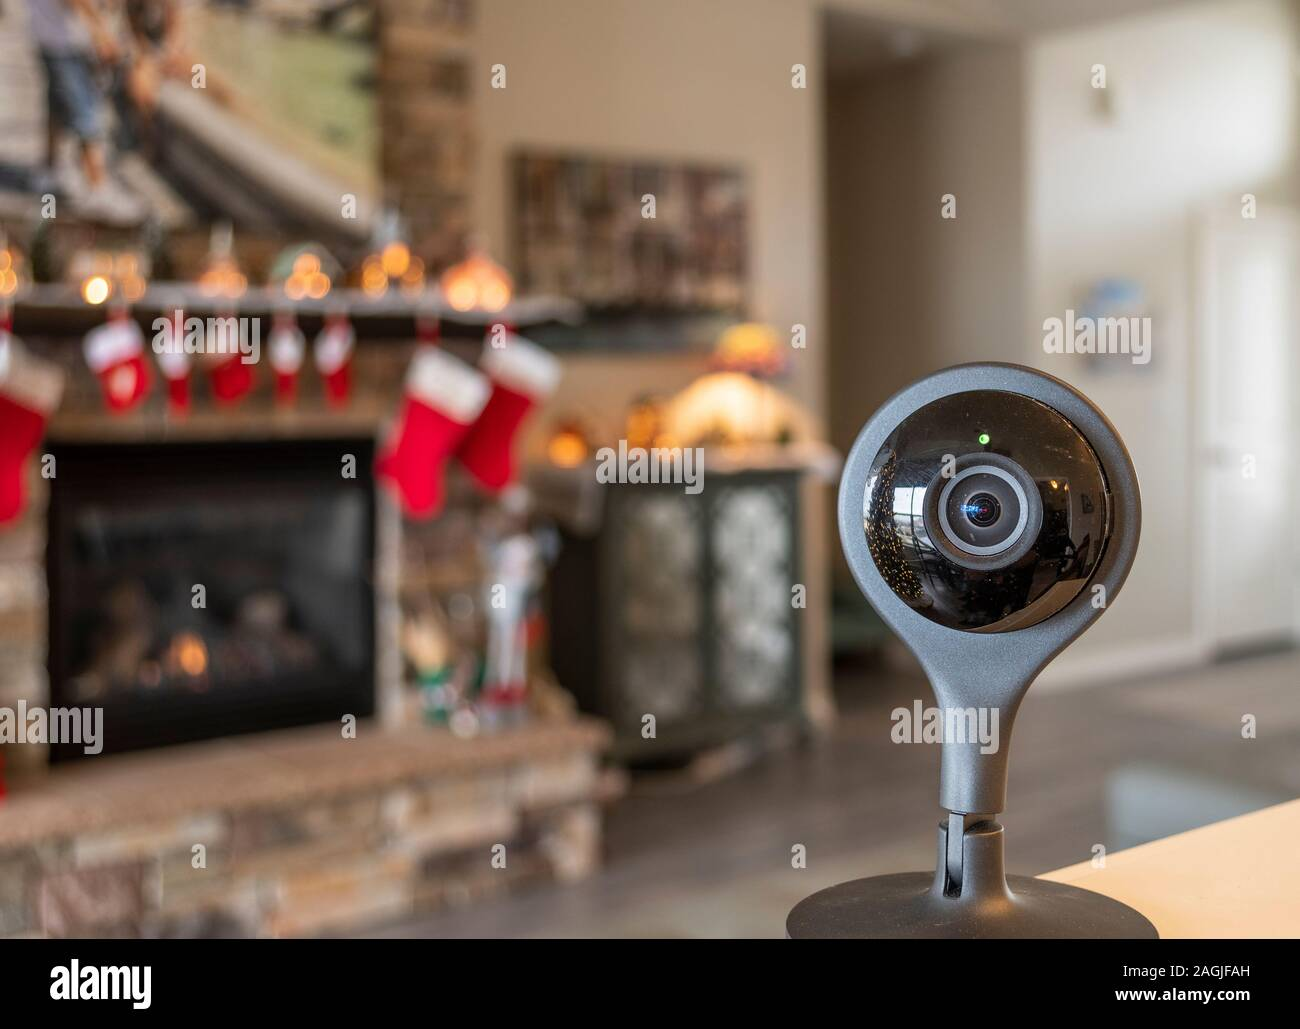 A security camera with the light on in front of an interior living room of a home at Christmas time. Stock Photo